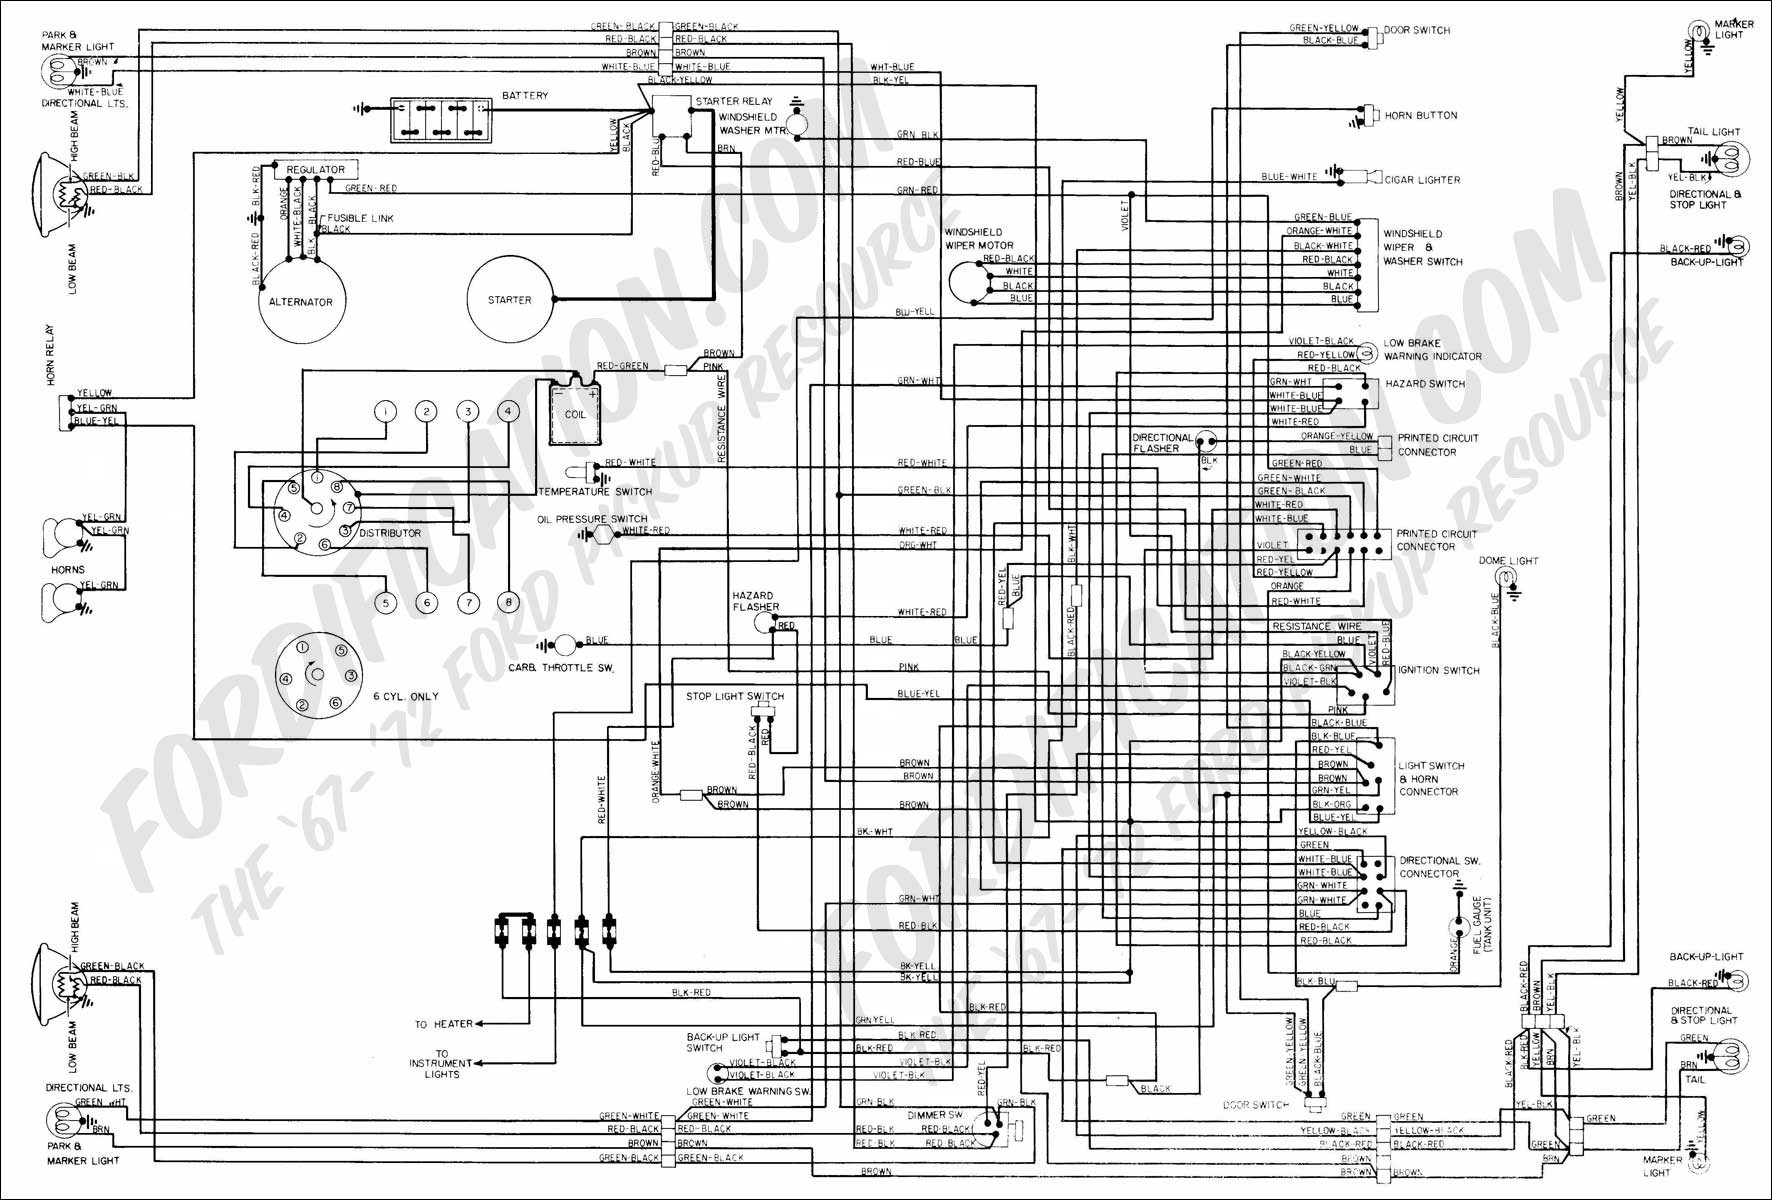 2007 ford Escape Engine Diagram ford Truck Brake Diagrams F700 Http Wwwfordtrucks forums Wiring Of 2007 ford Escape Engine Diagram